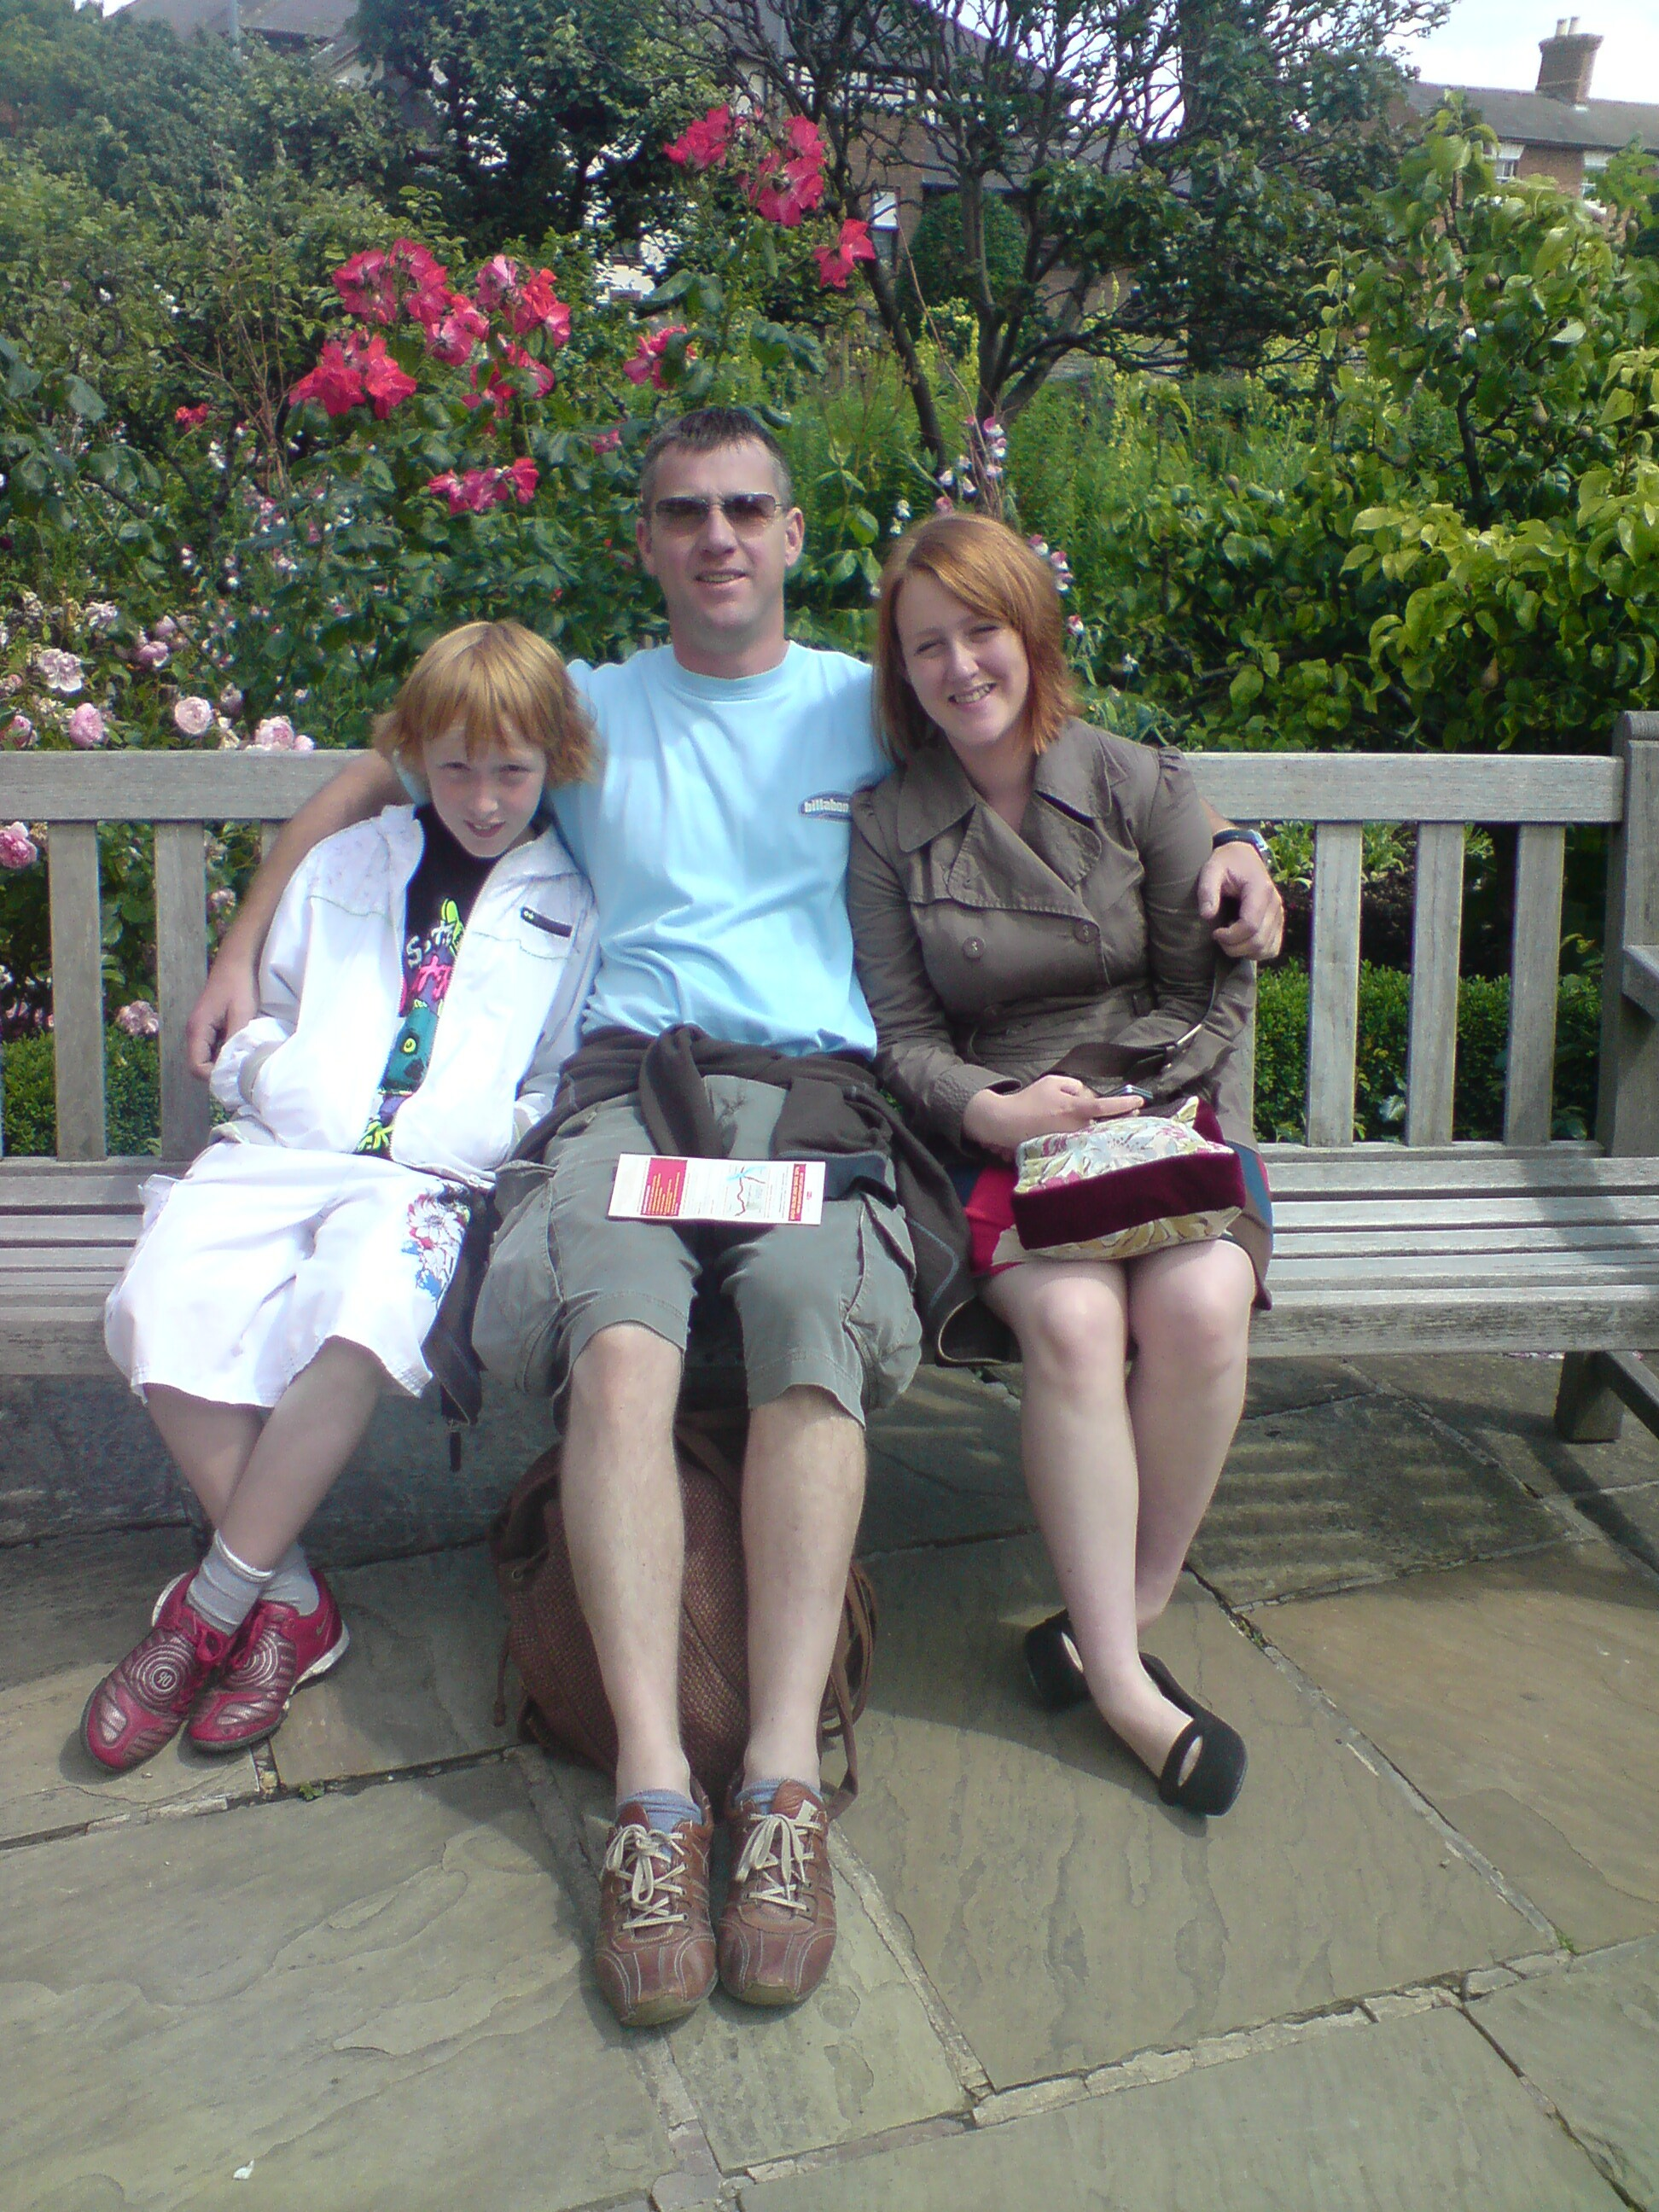 Another fine family photo - with Wyn this time